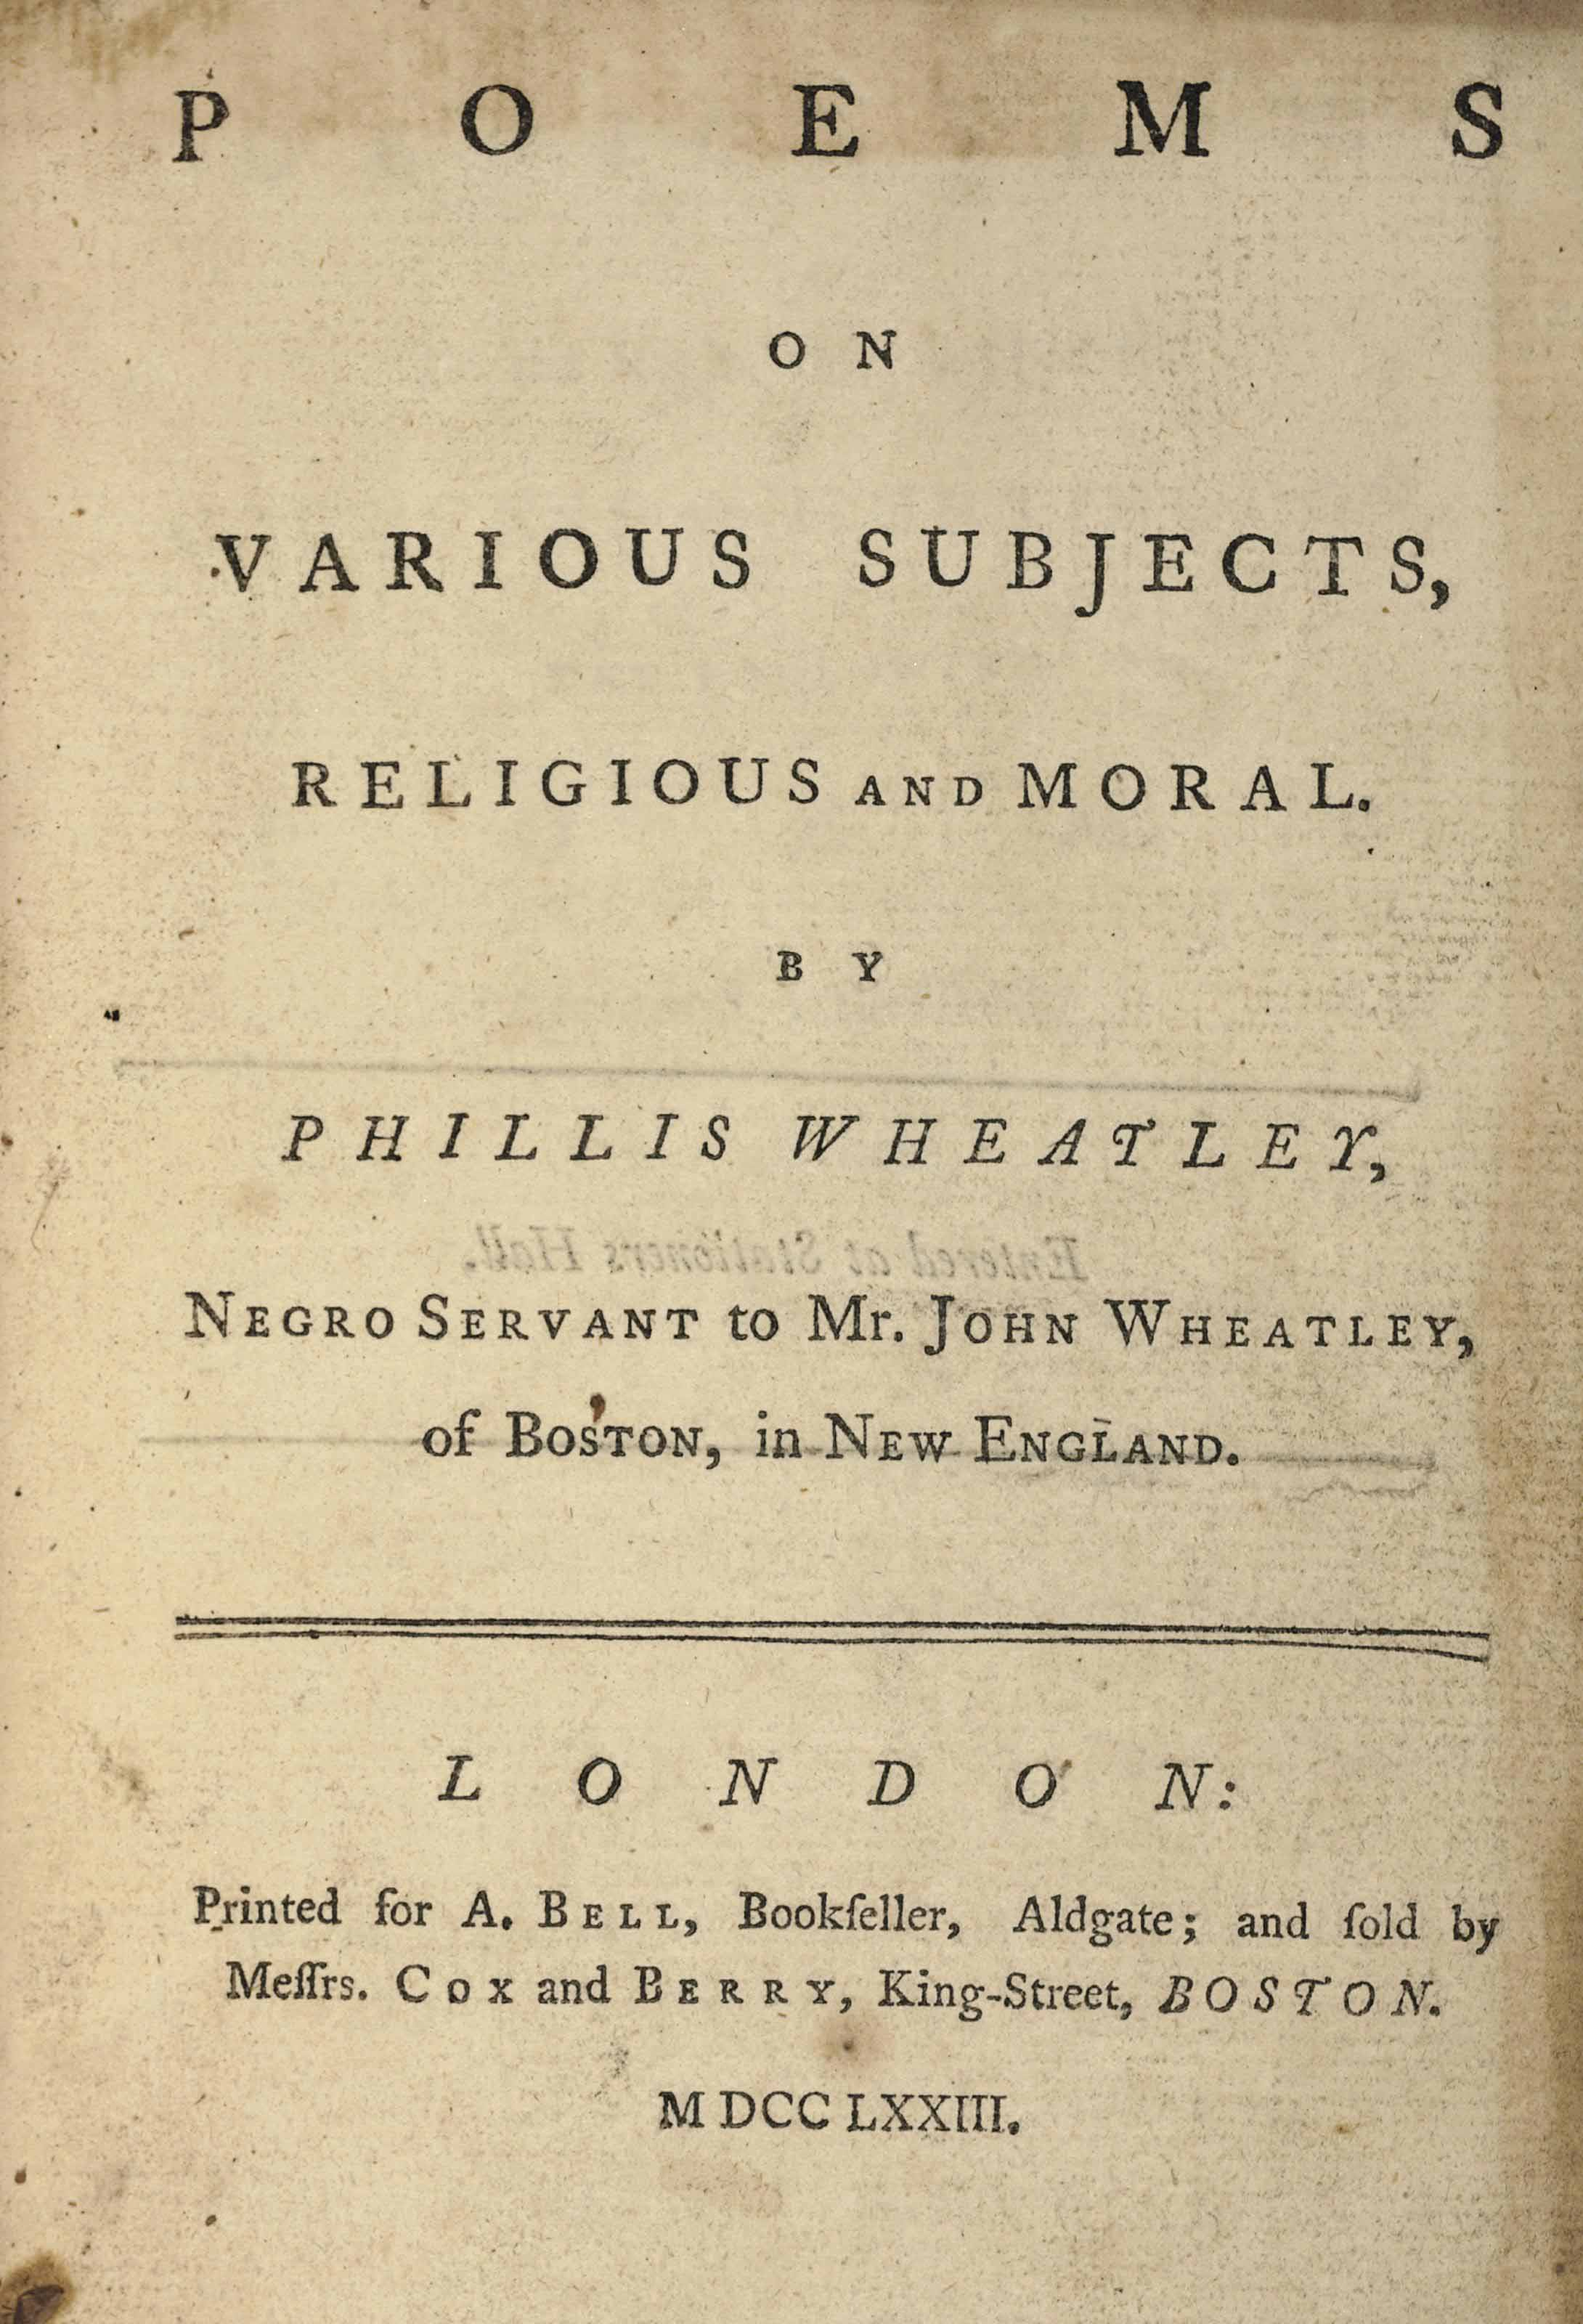 WHEATLEY, Phyllis (1753-1784). Poems on Various Subjects, Religious and Moral. London: A. Bell, 1773. 8° (174 x 110mm). With the attestation leaf. (Lacks the frontispiece, marginal browning to title and last leaf, occasional light marginal soiling and light spotting.) Contemporary sheep, spine titled in gilt (rebacked, corners rubbed, front free endpaper detached).